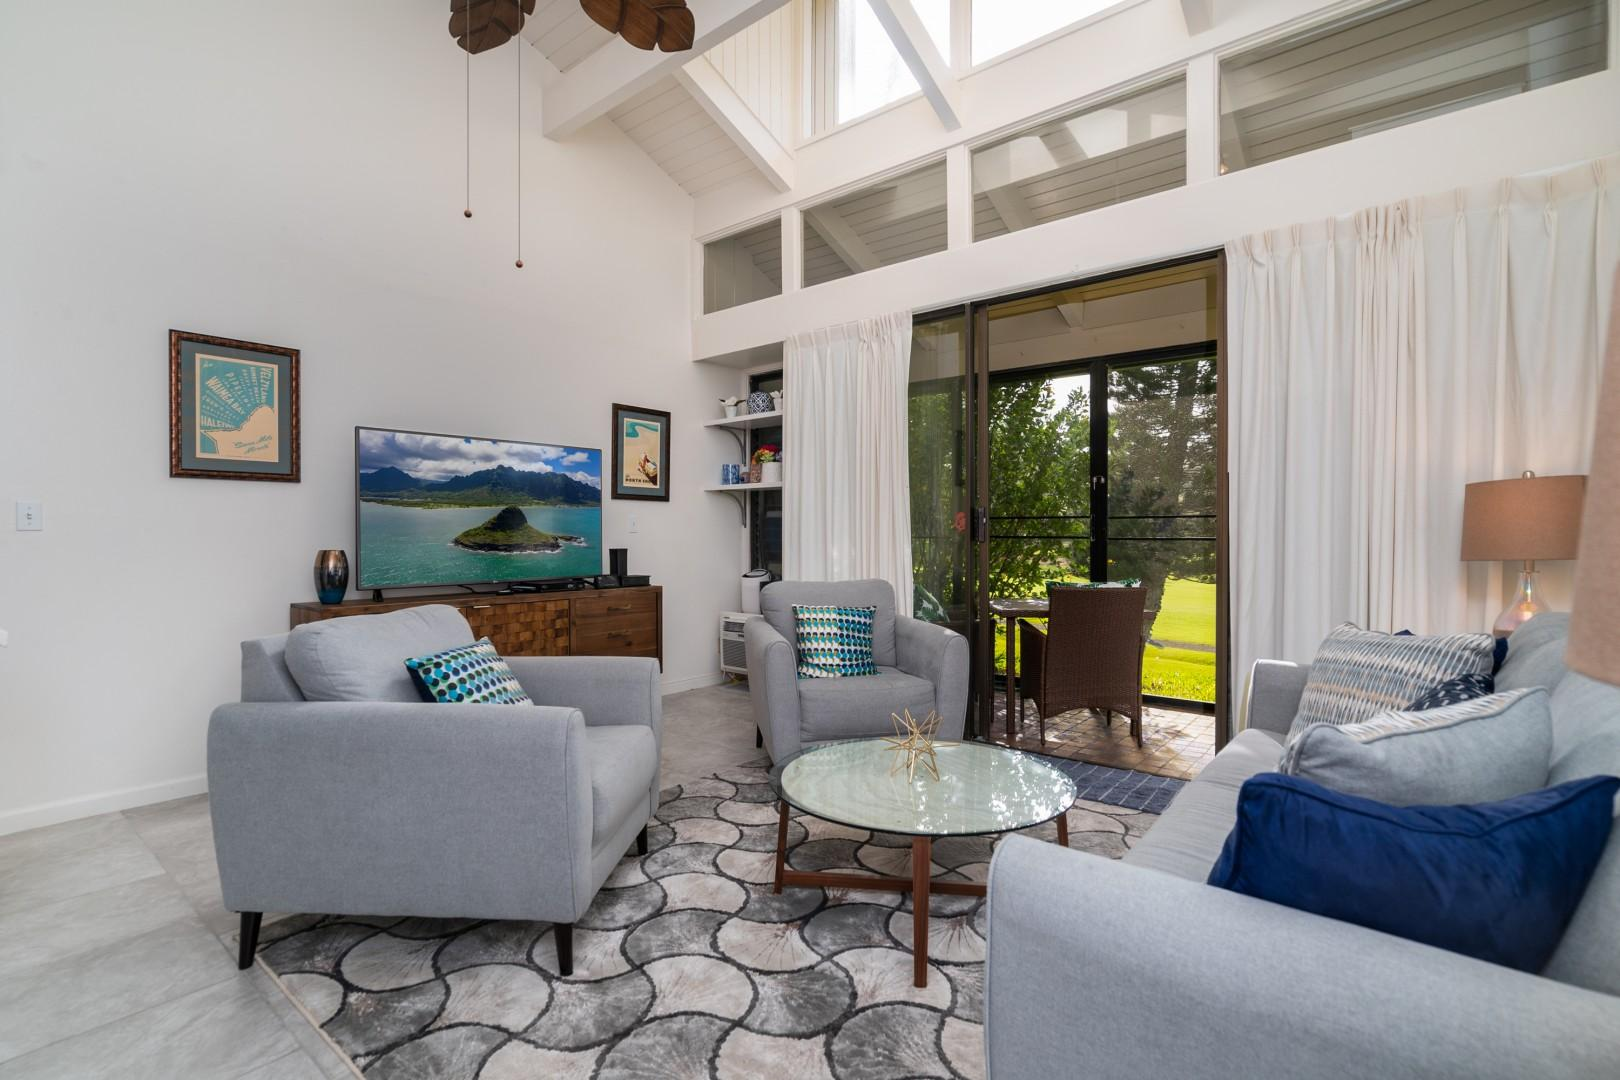 Large-screen television, high ceilings, and a golf course view